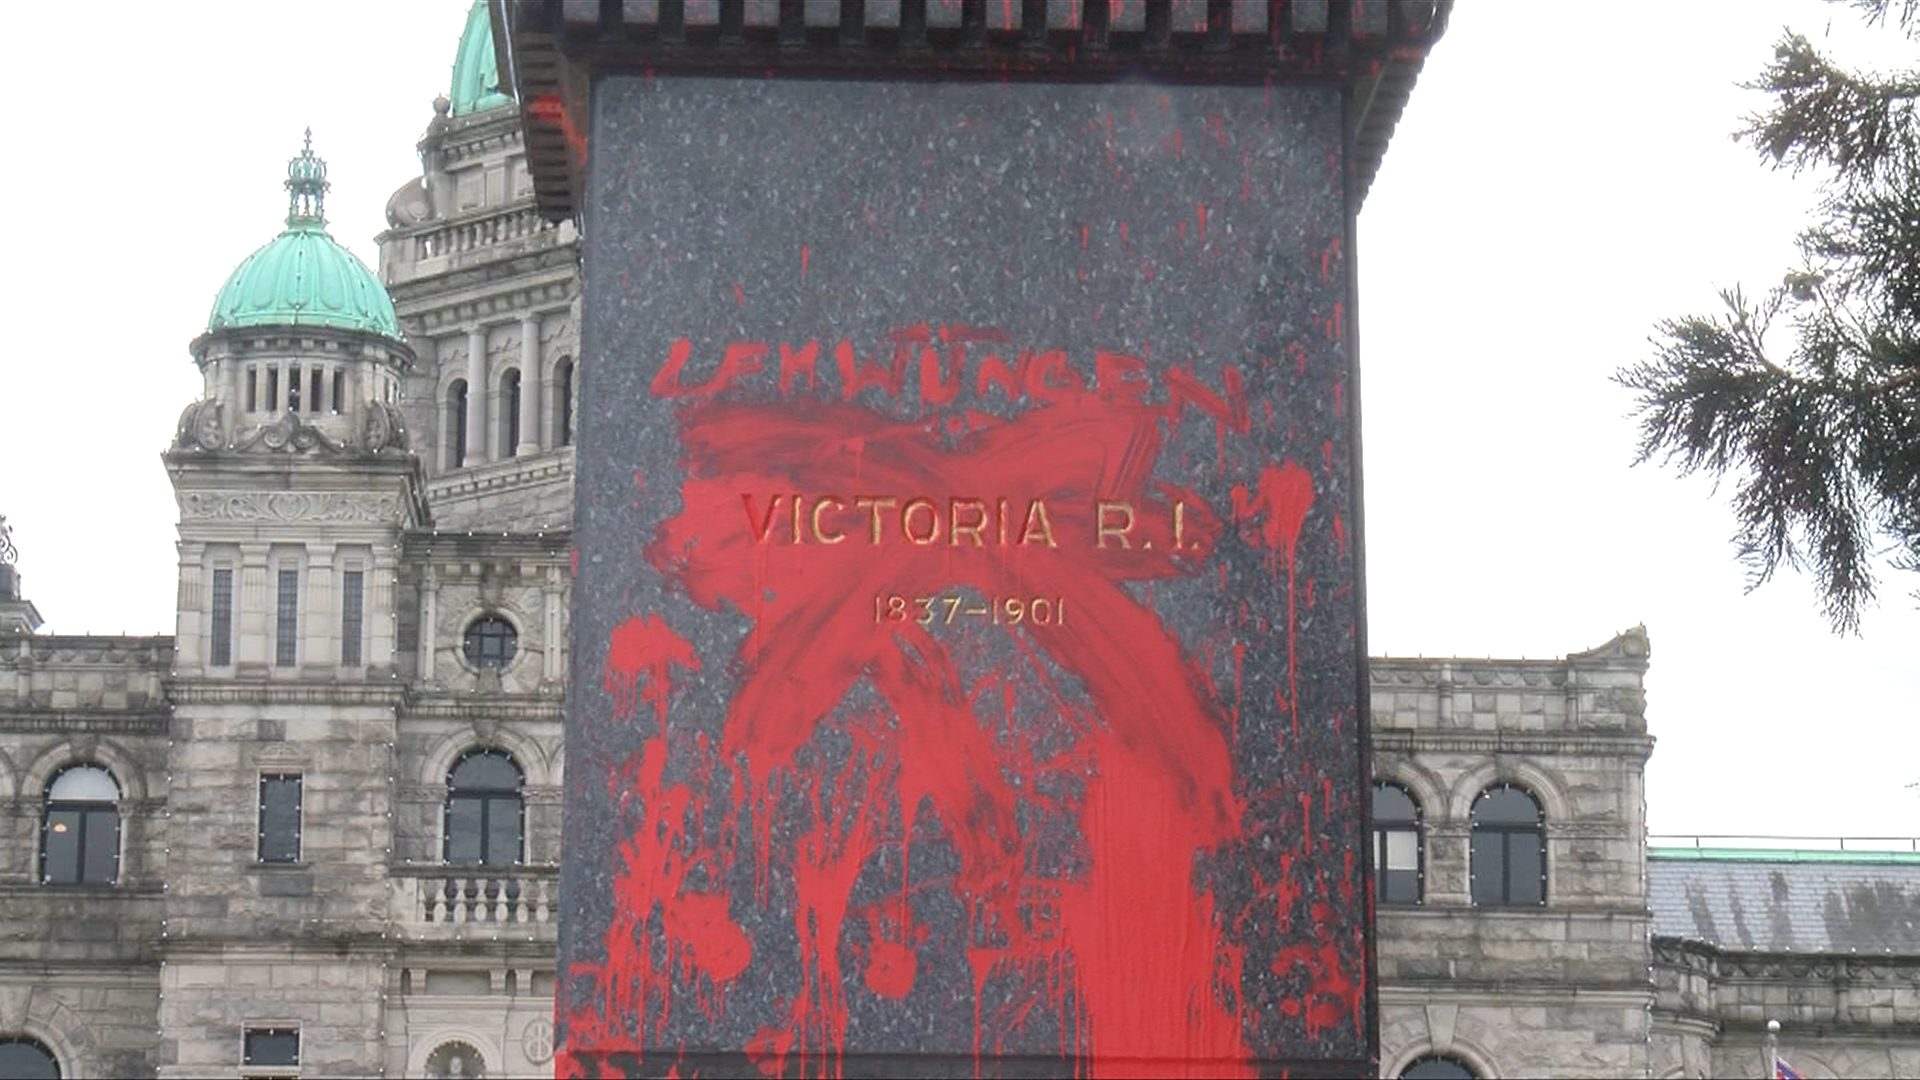 Vandalization of Queen Victoria statue likely done to highlight Canada's colonial past: UVic professor